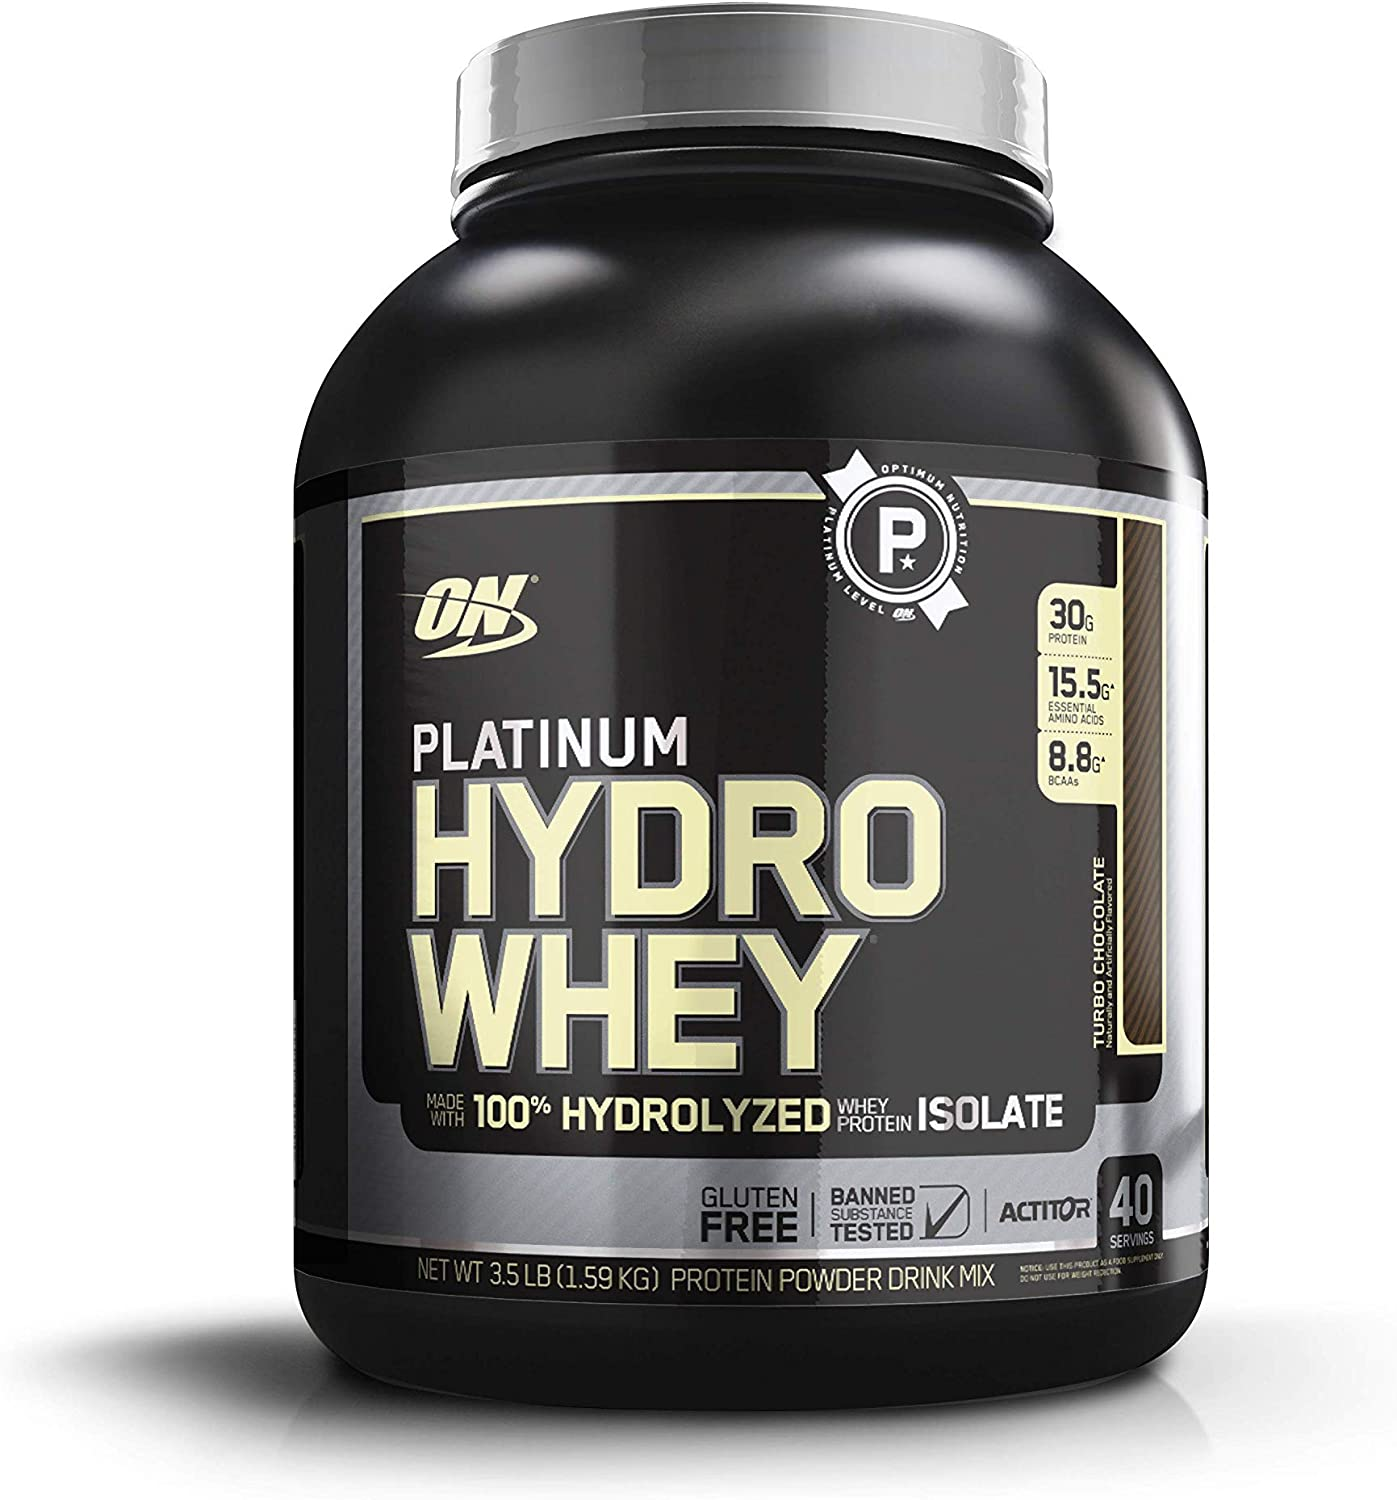 Amazon.com: Optimum Nutrition Platinum Hydrowhey Protein Powder, 100% Hydrolyzed Whey Protein Isolate Powder, Flavor: Turbo Chocolate, 3.5 Pounds: Health & Personal Care